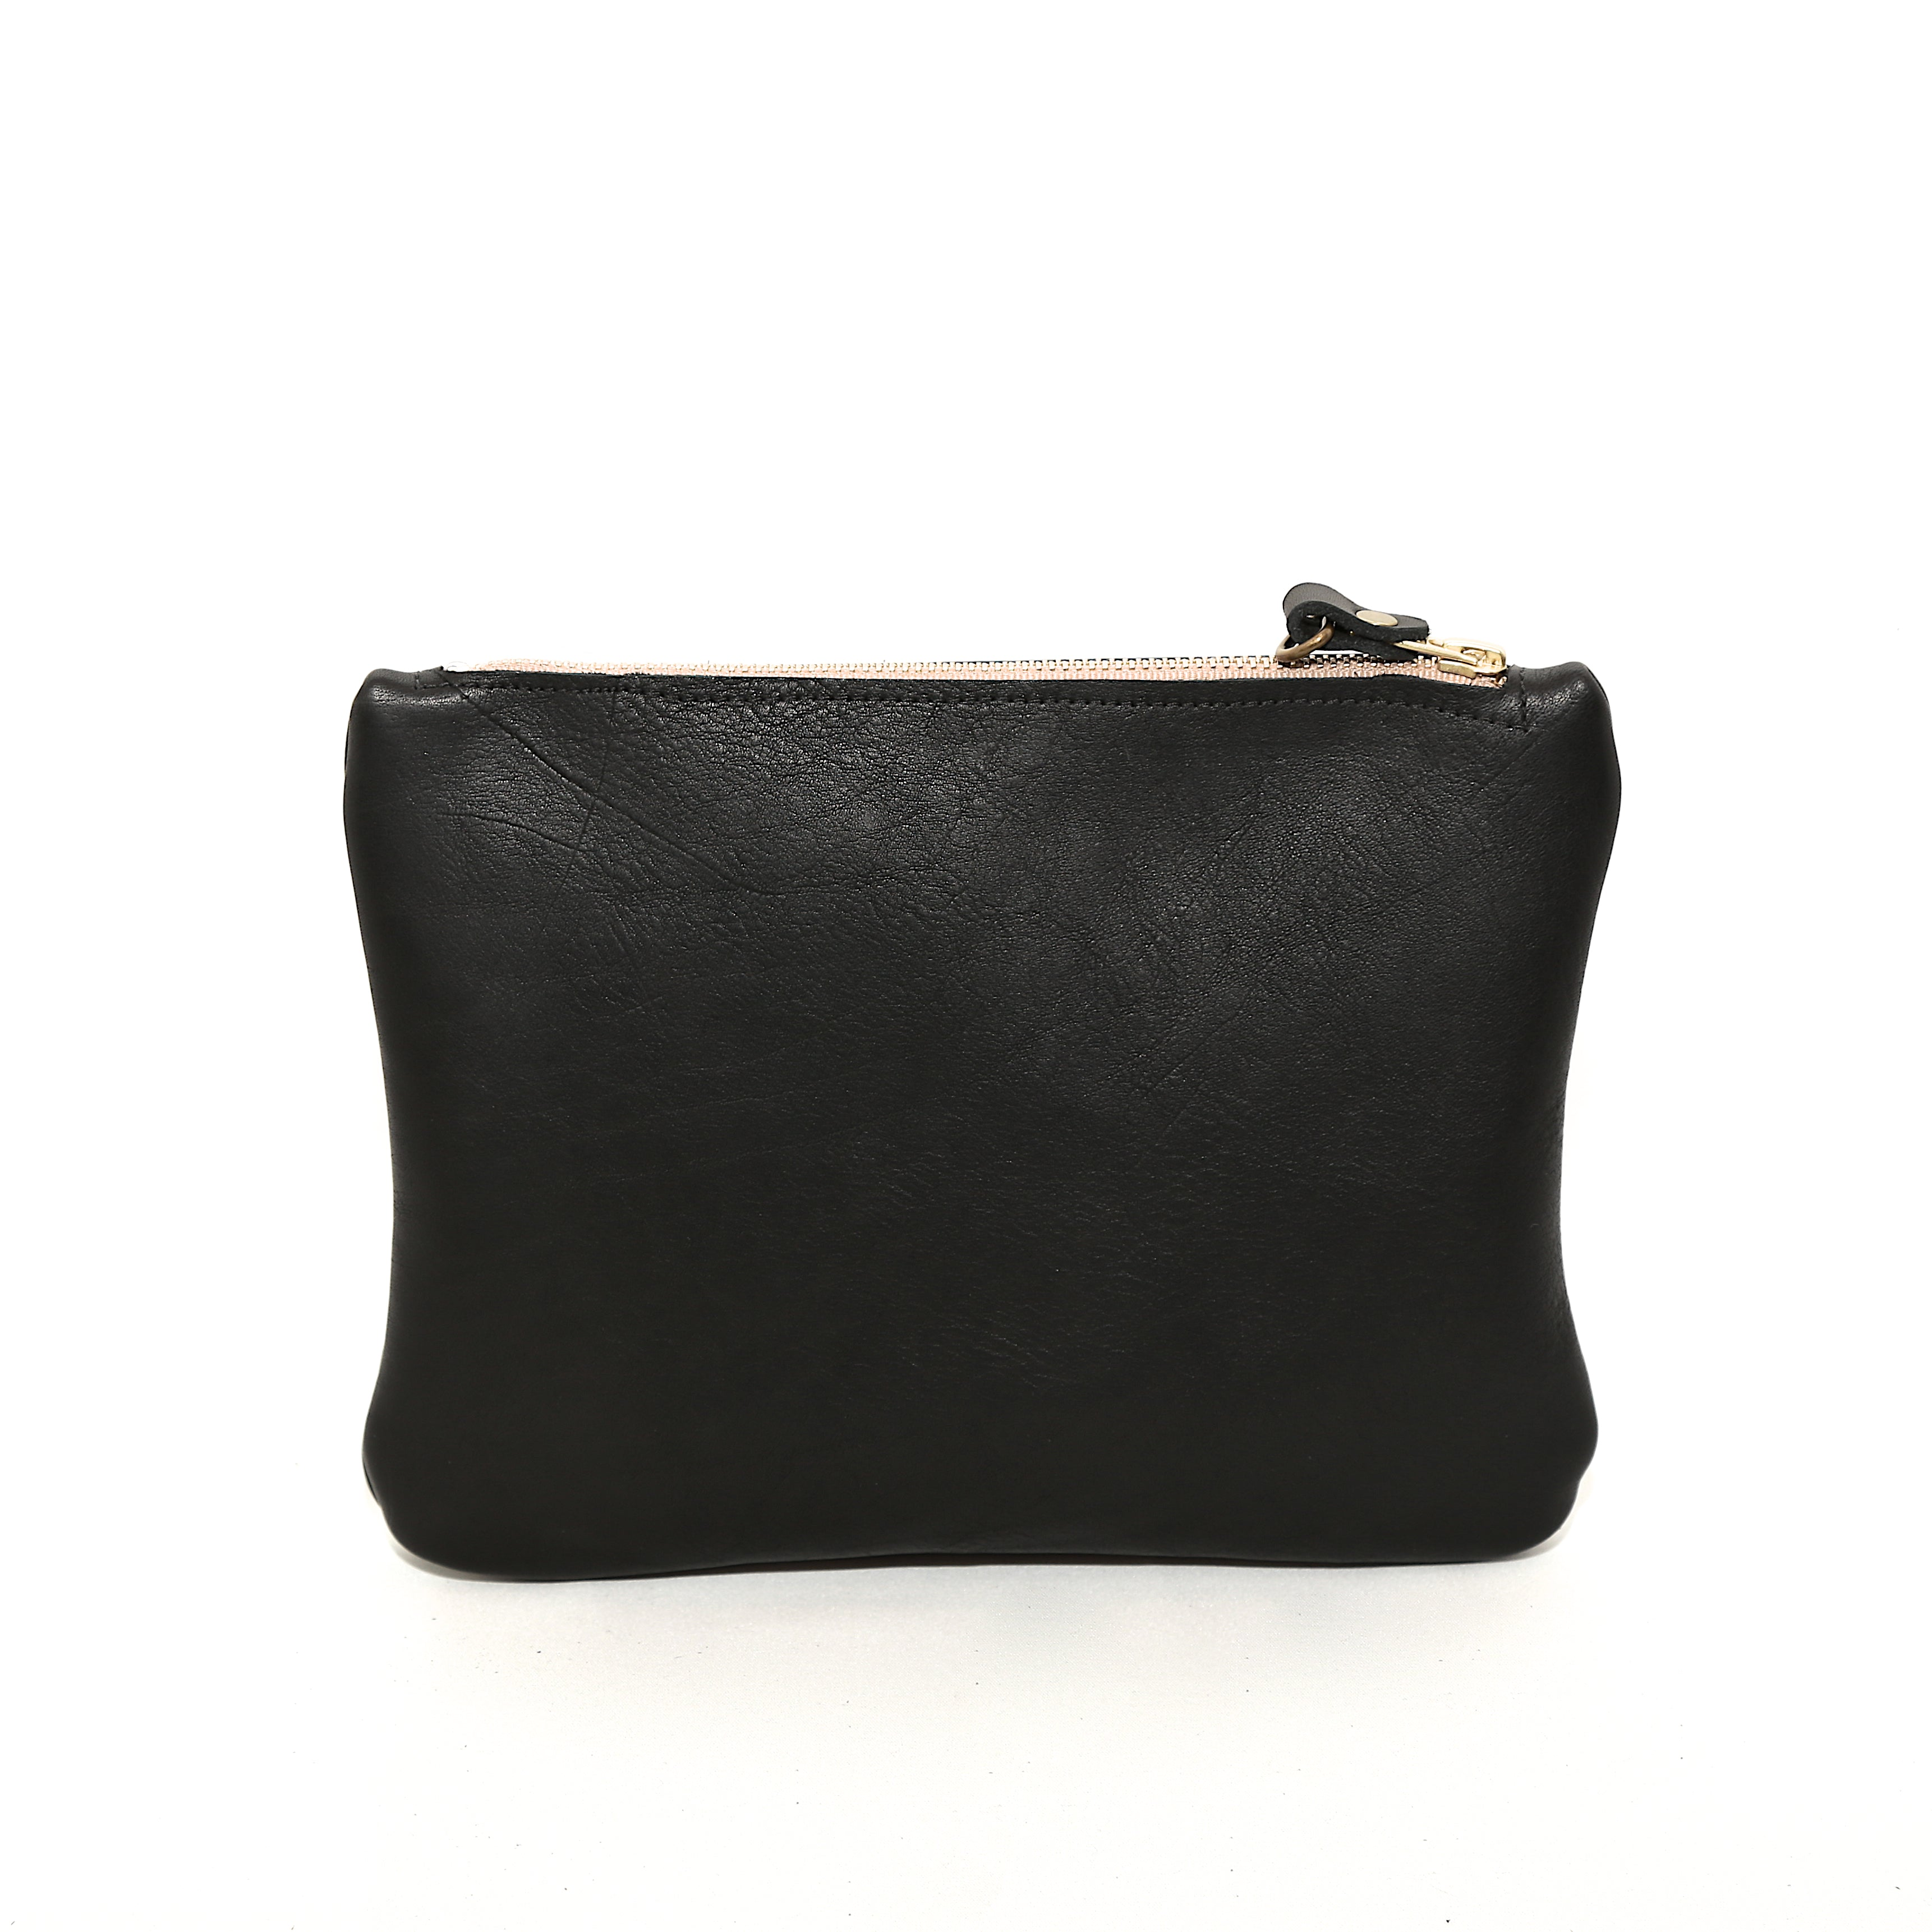 Zip Clutch In Black Leather - handcrafted by Market Canvas Leather in Tofino, BC, Canada